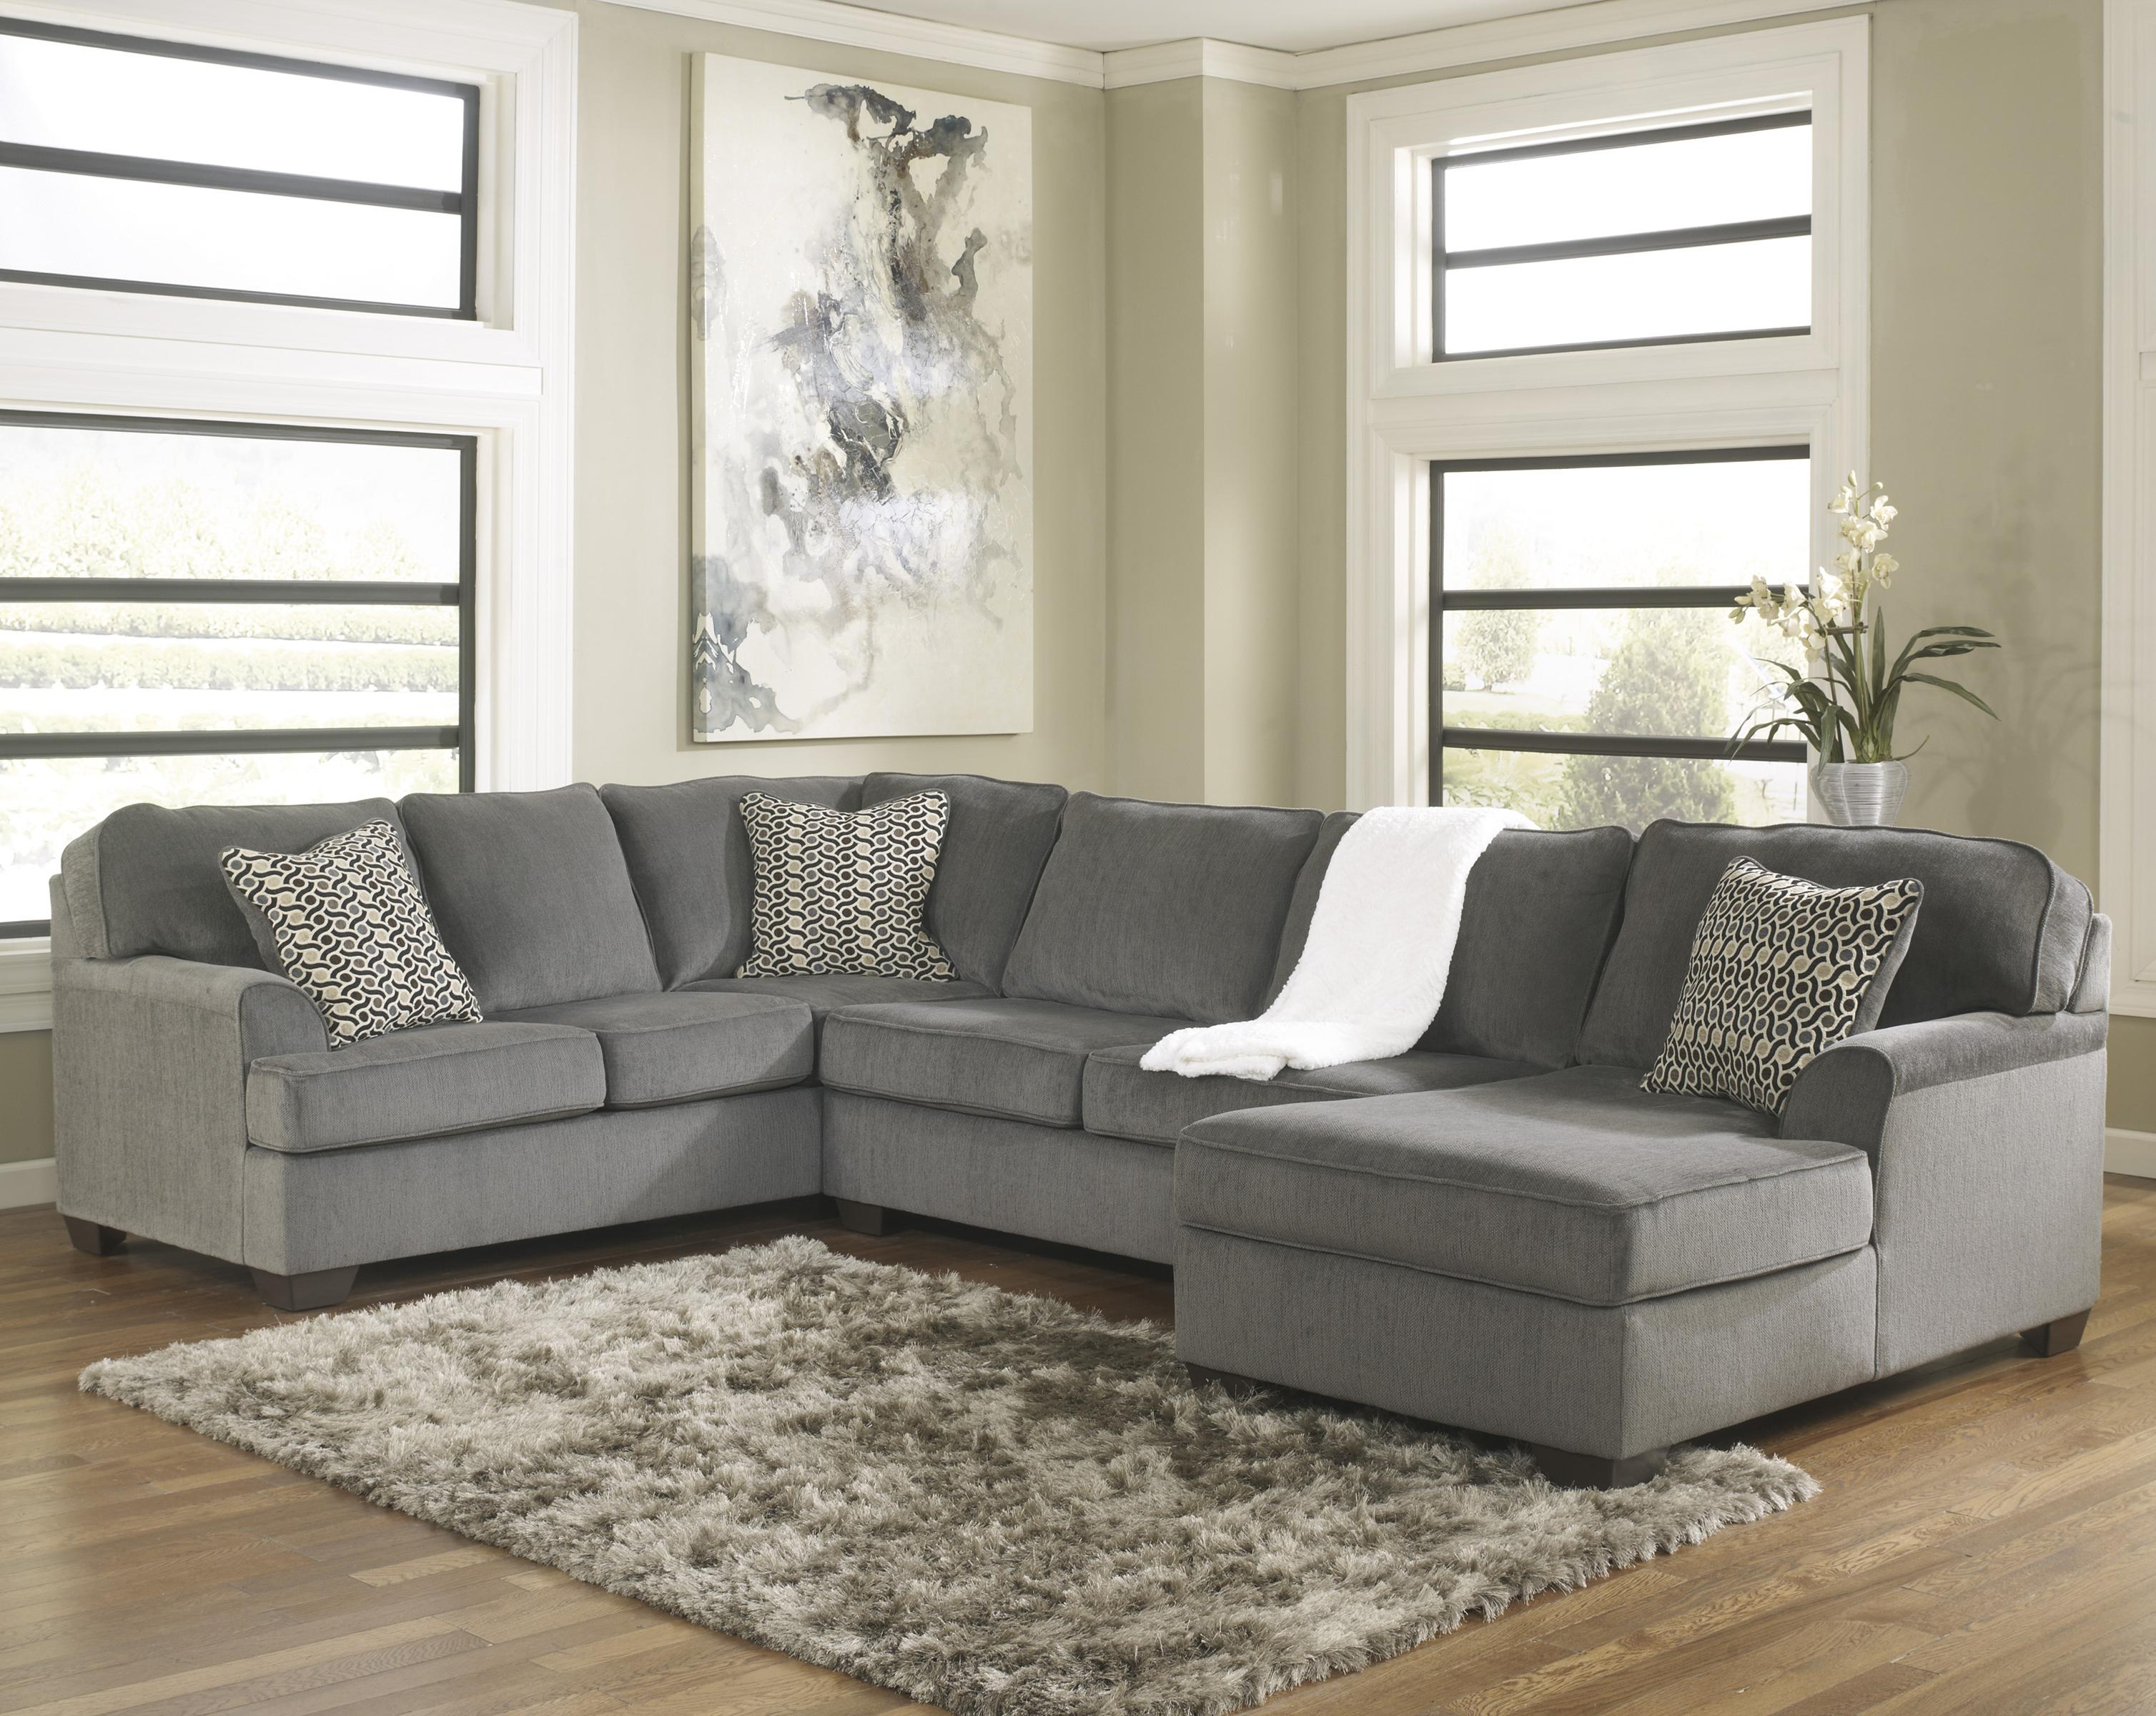 Sofa Set For Drawing Room With Price Ashley Furniture Loric Smoke Contemporary 3 Piece